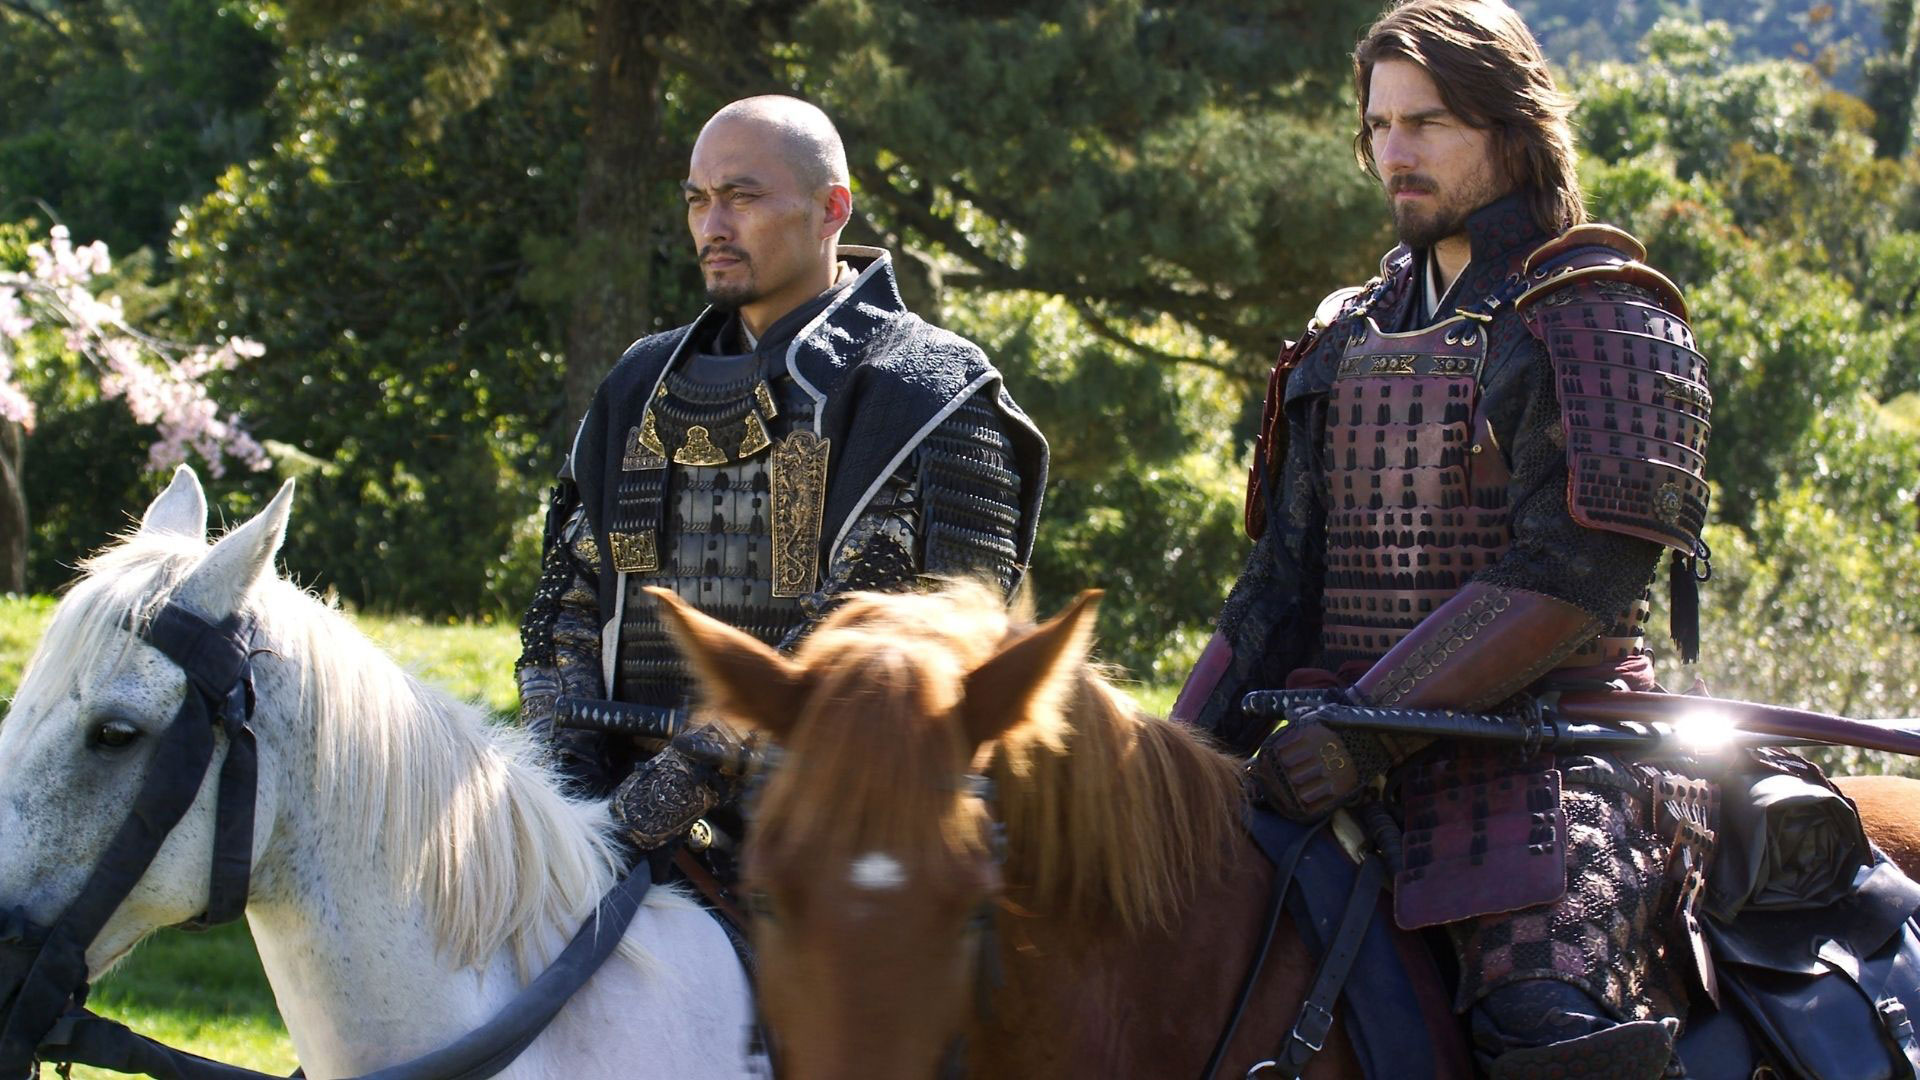 Episode-279-Learn-English-from-Movies-The-Last-Samurai